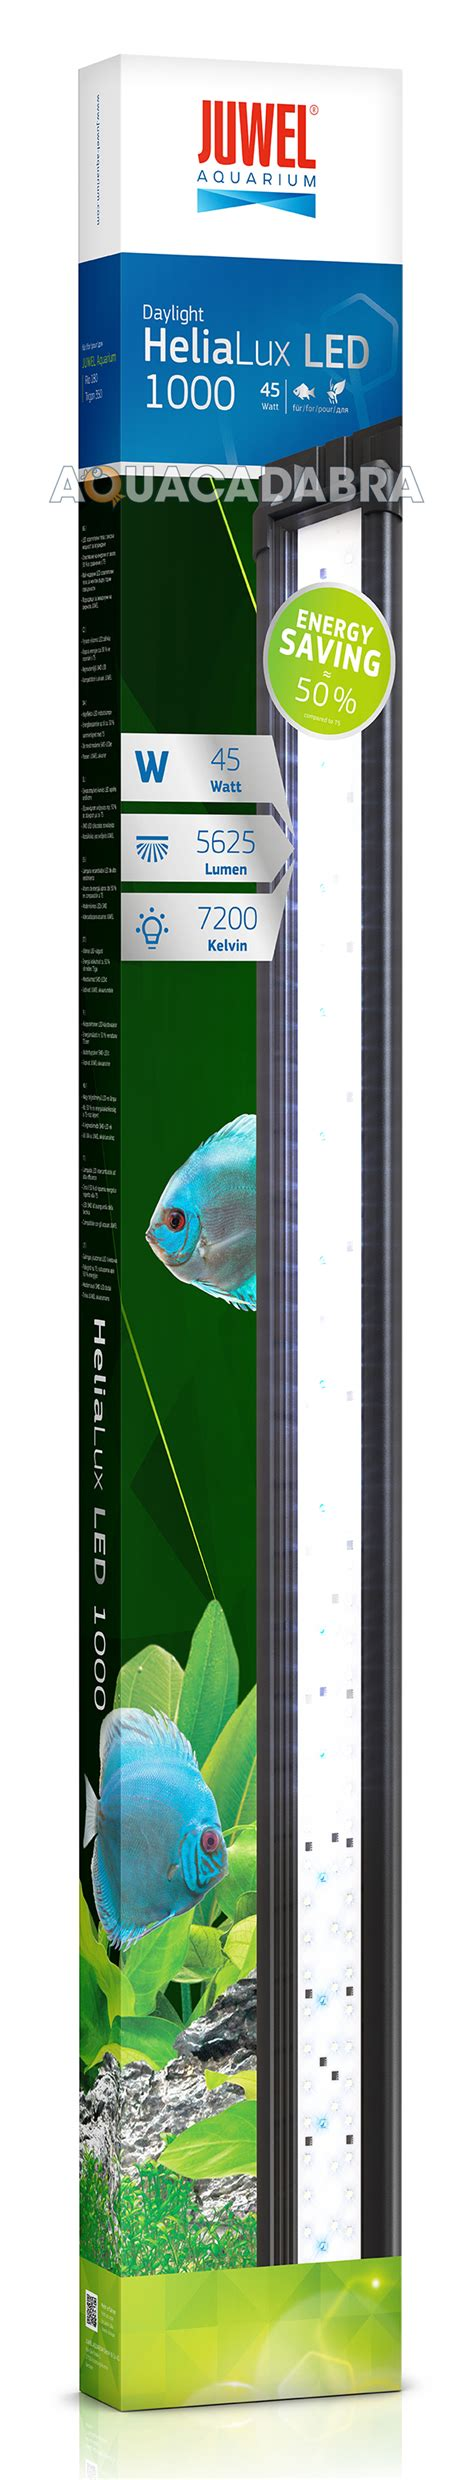 juwel helialux led light unit replaces t8 t5 bulb lighting aquarium fish tank ebay